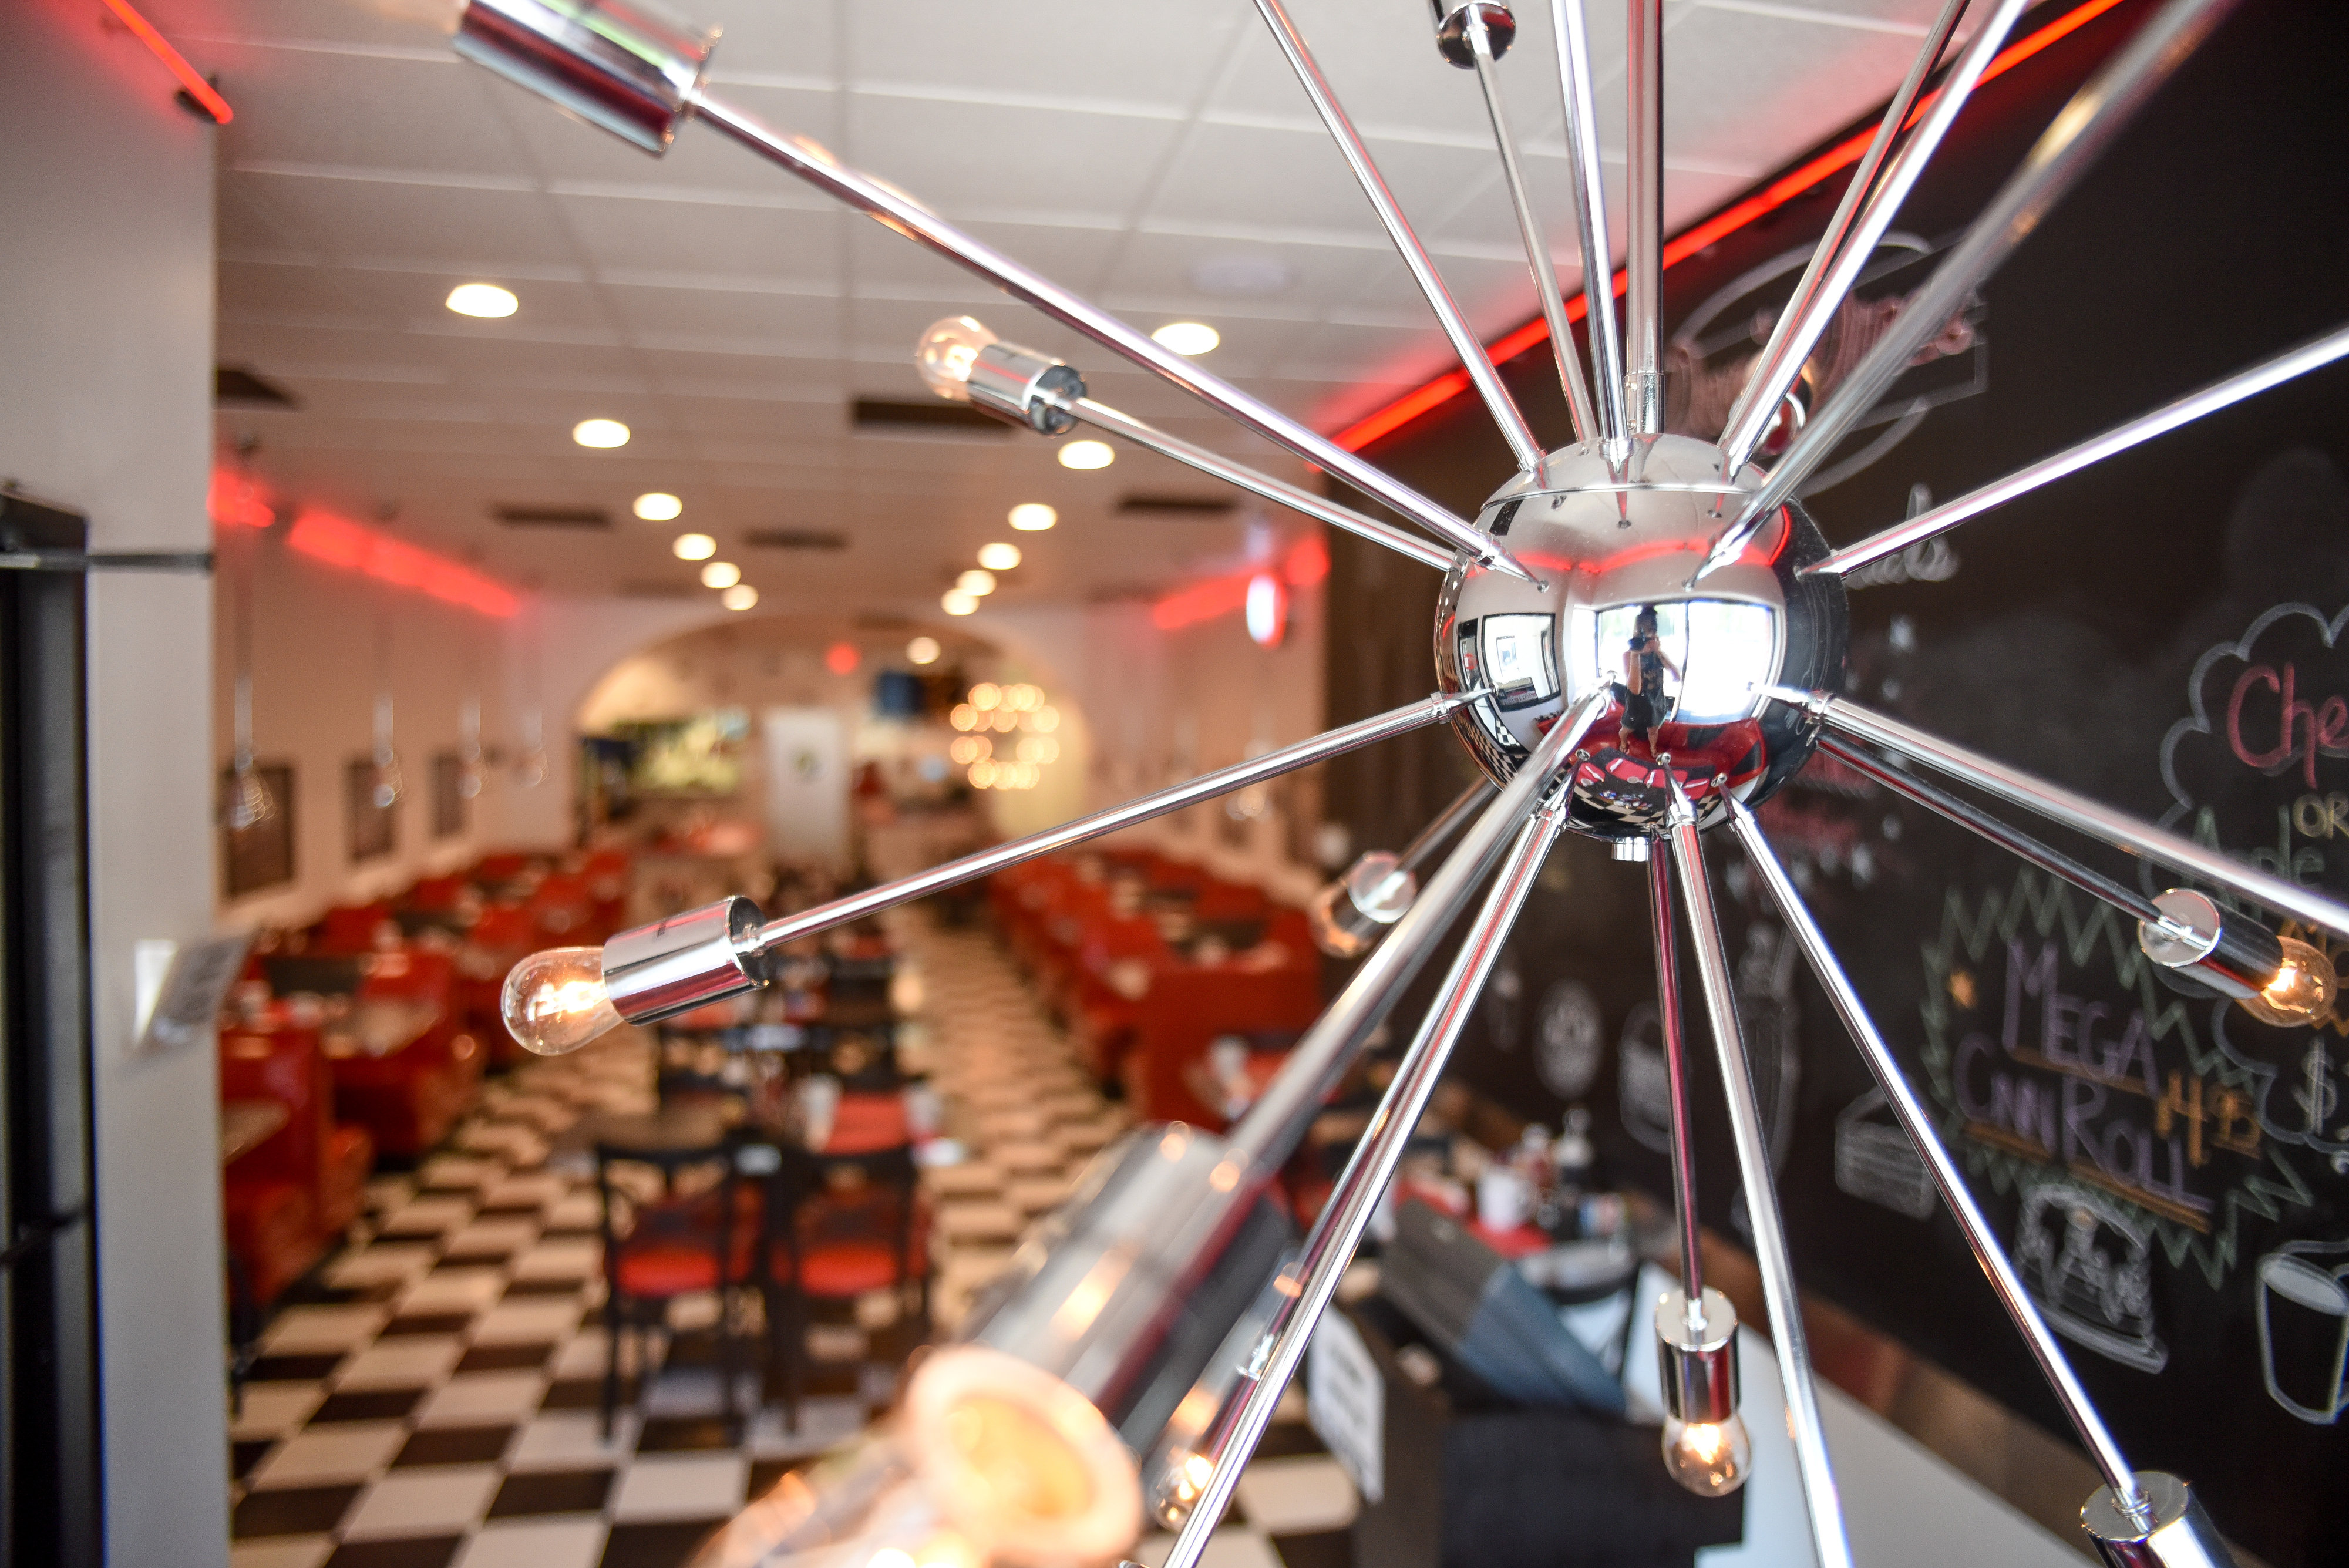 Dave's Diner Interior